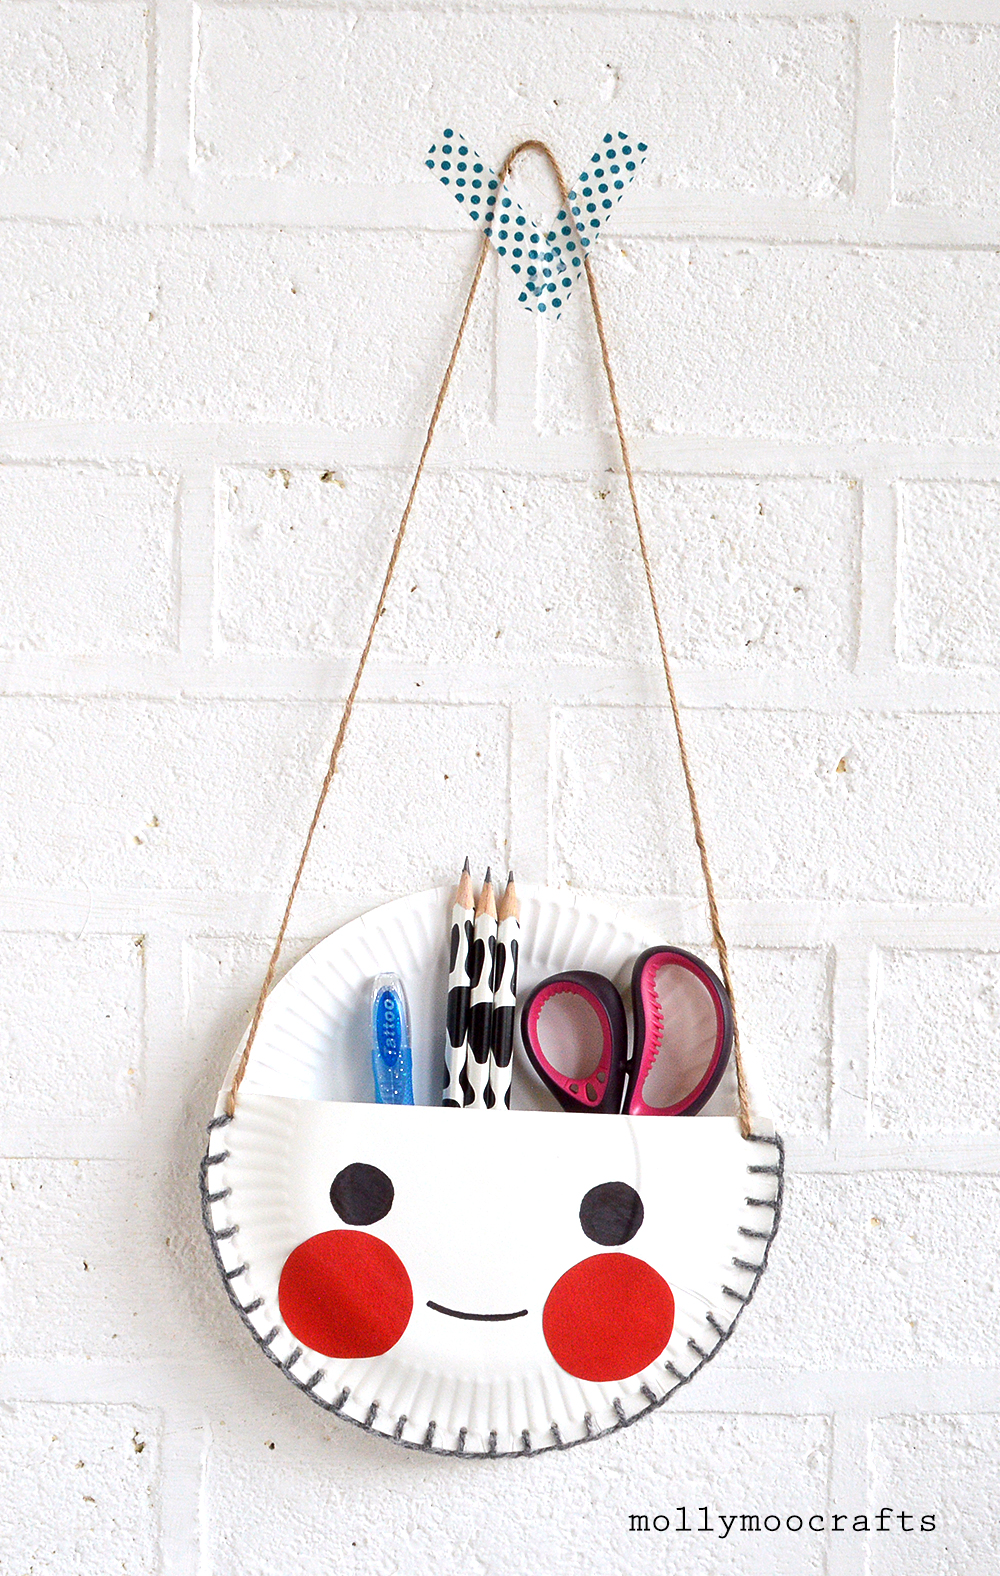 Mollymoocrafts Paper Plate Craft The Cutest Desk Tidy